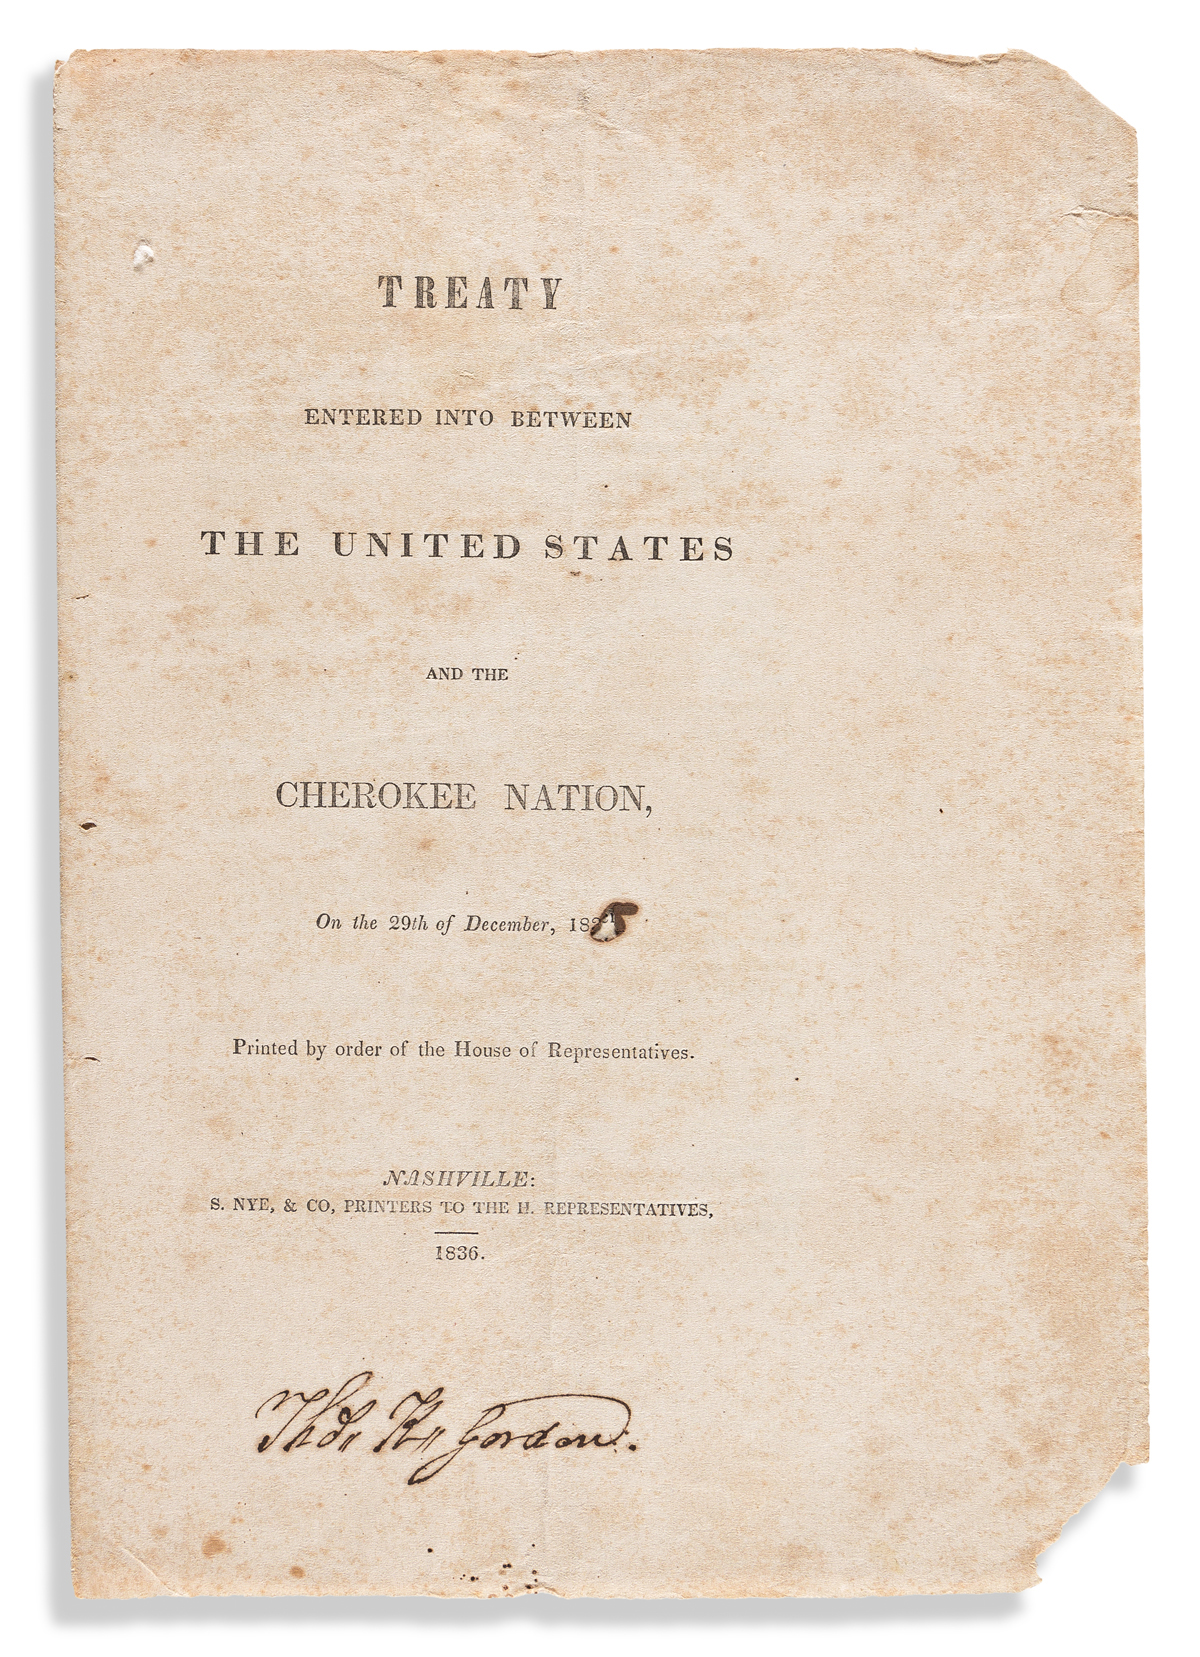 (AMERICAN INDIANS.) Treaty Entered into between the United States and the Cherokee Nation.